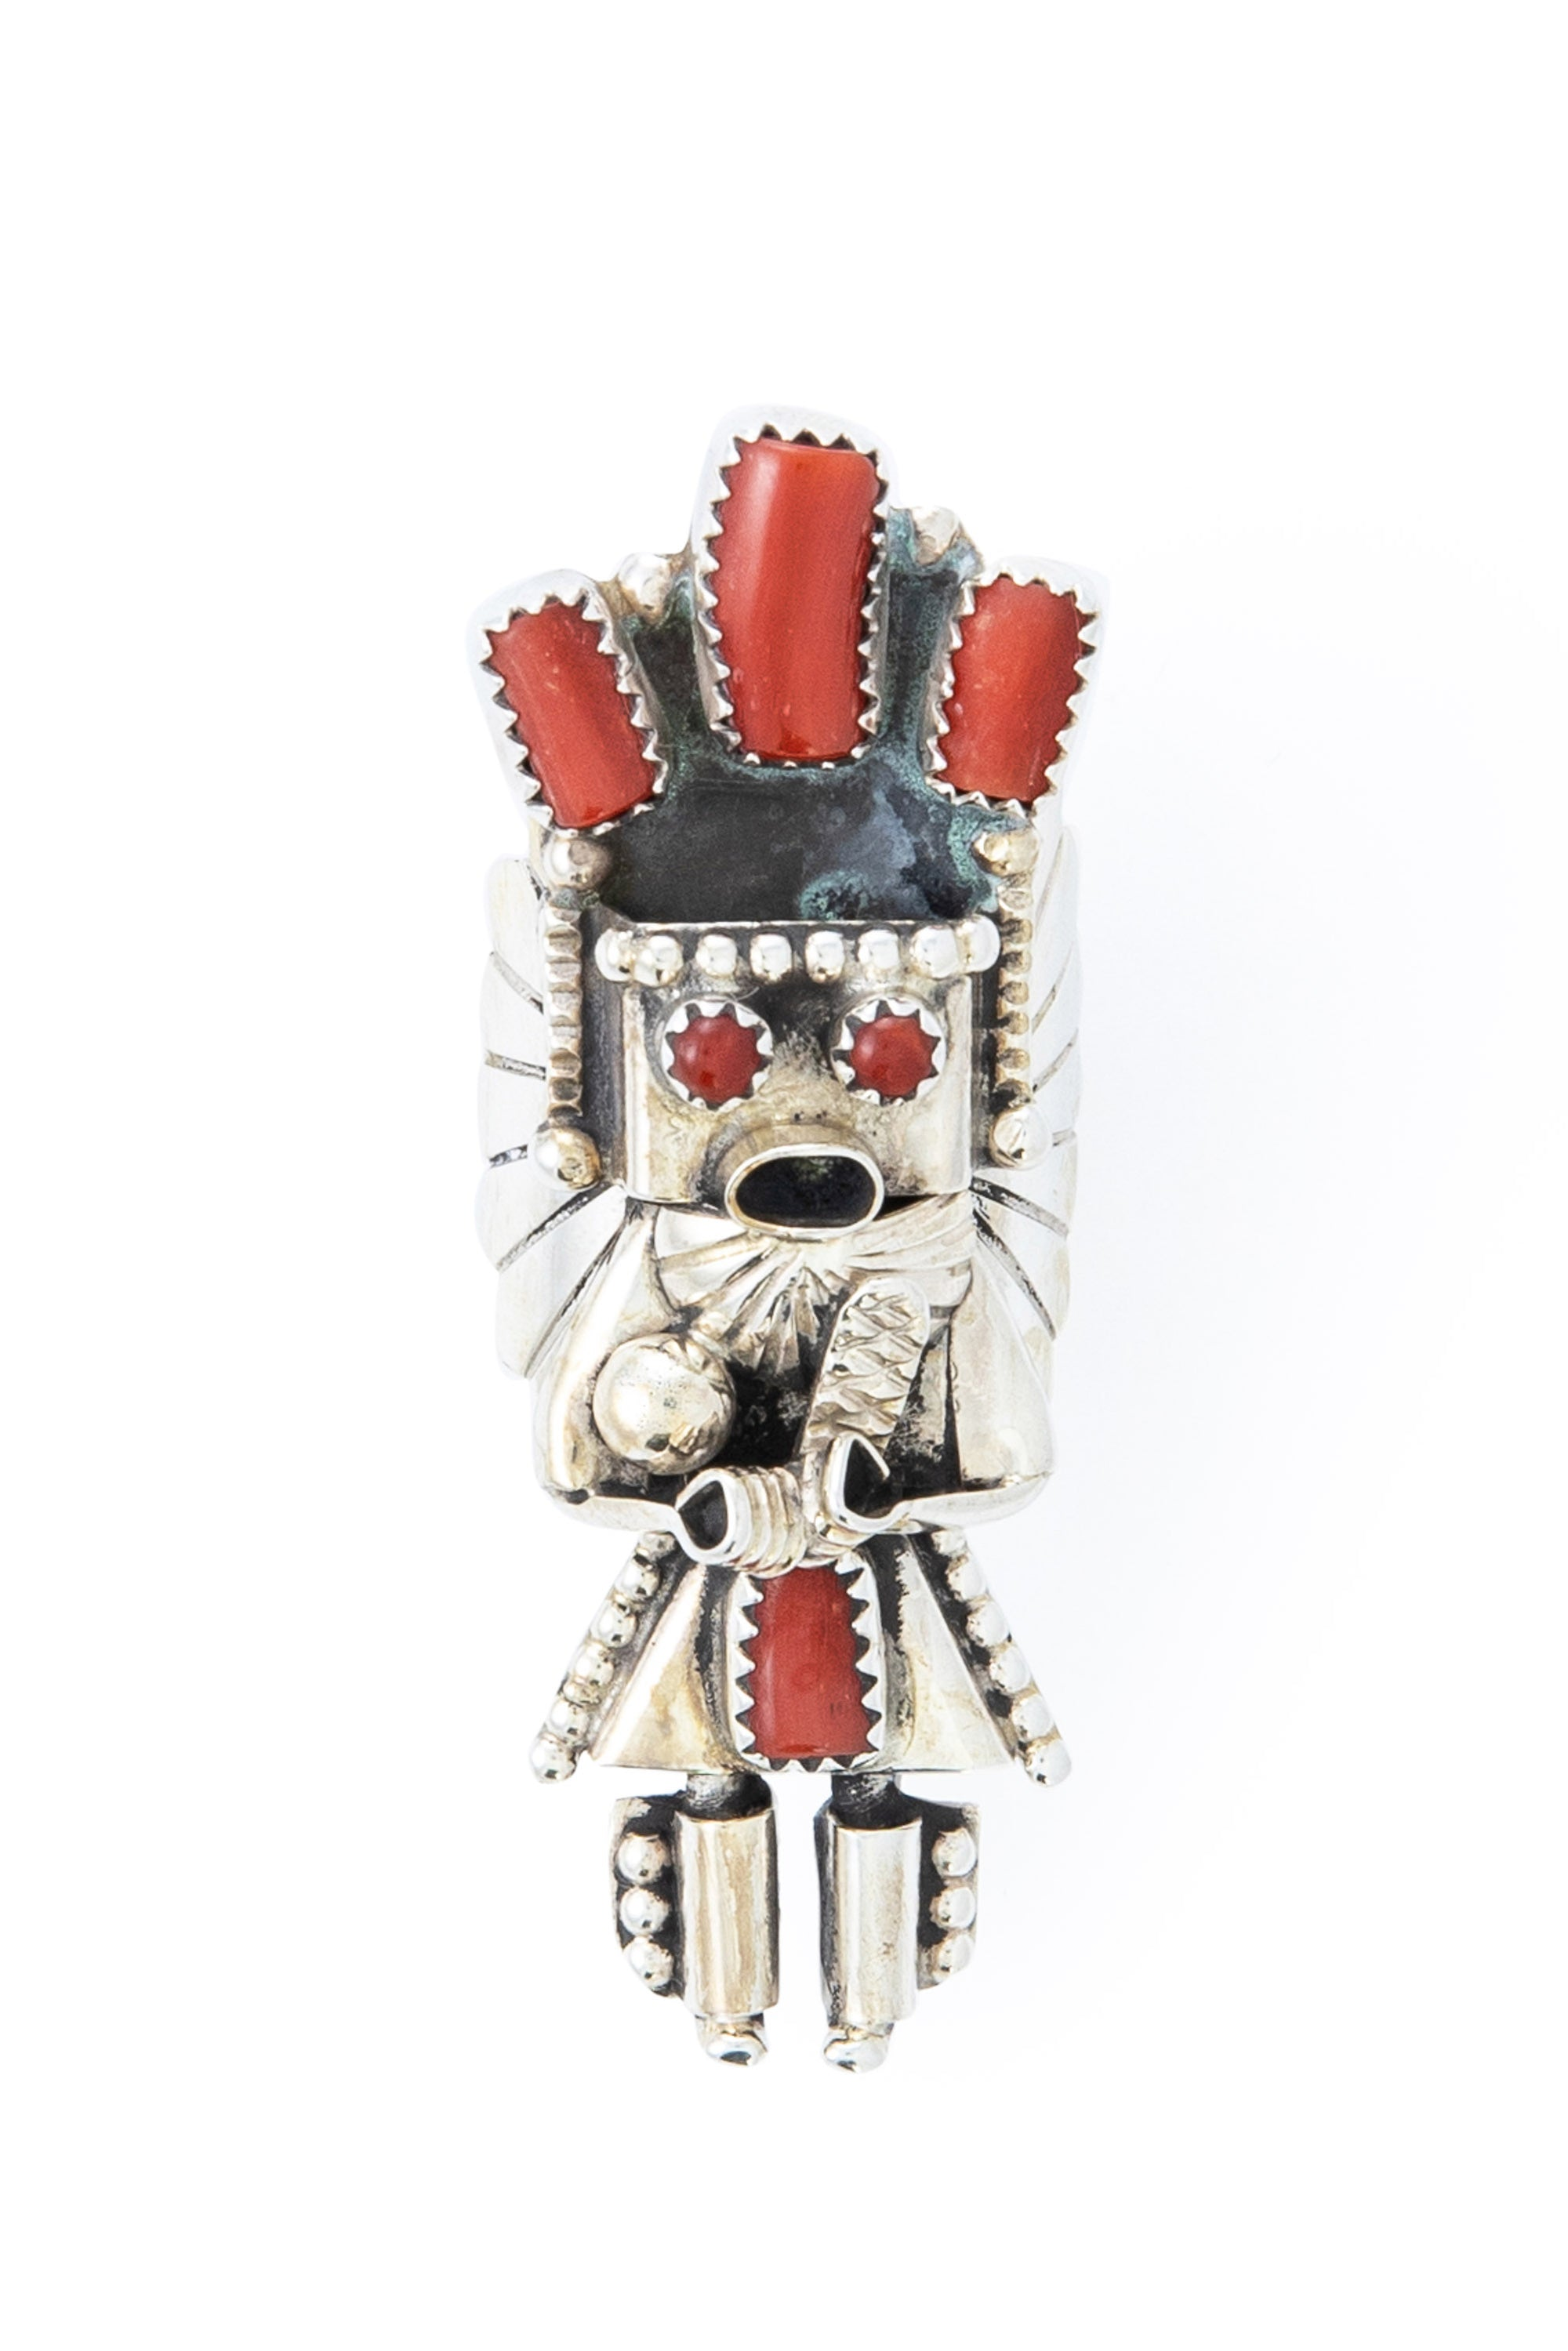 Ring, Conversational, Kachina, Coral, Hallmark, Smallcanyon, Vintage, 599